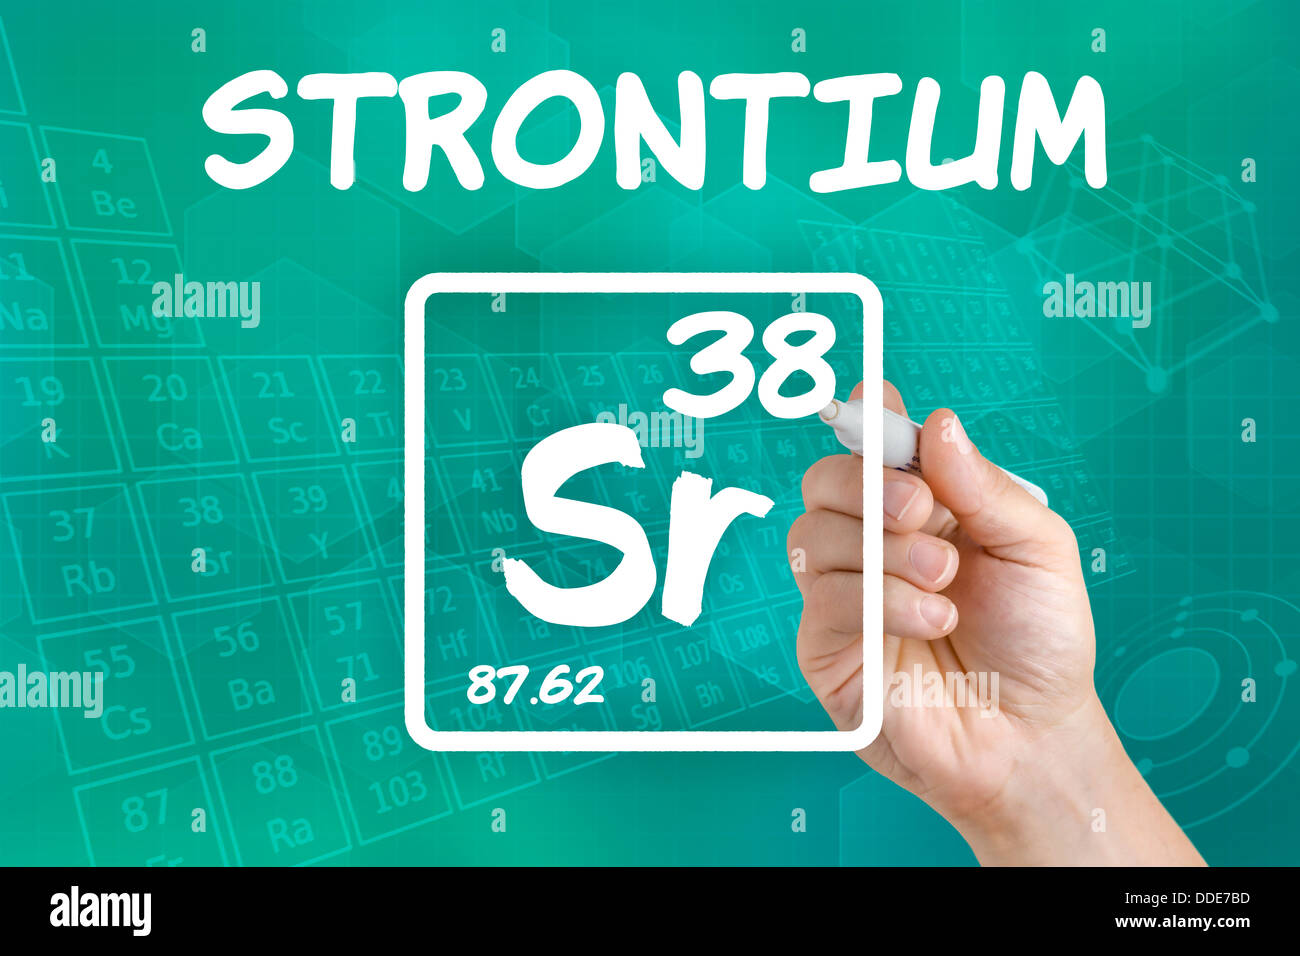 Symbol for the chemical element strontium stock photo royalty symbol for the chemical element strontium biocorpaavc